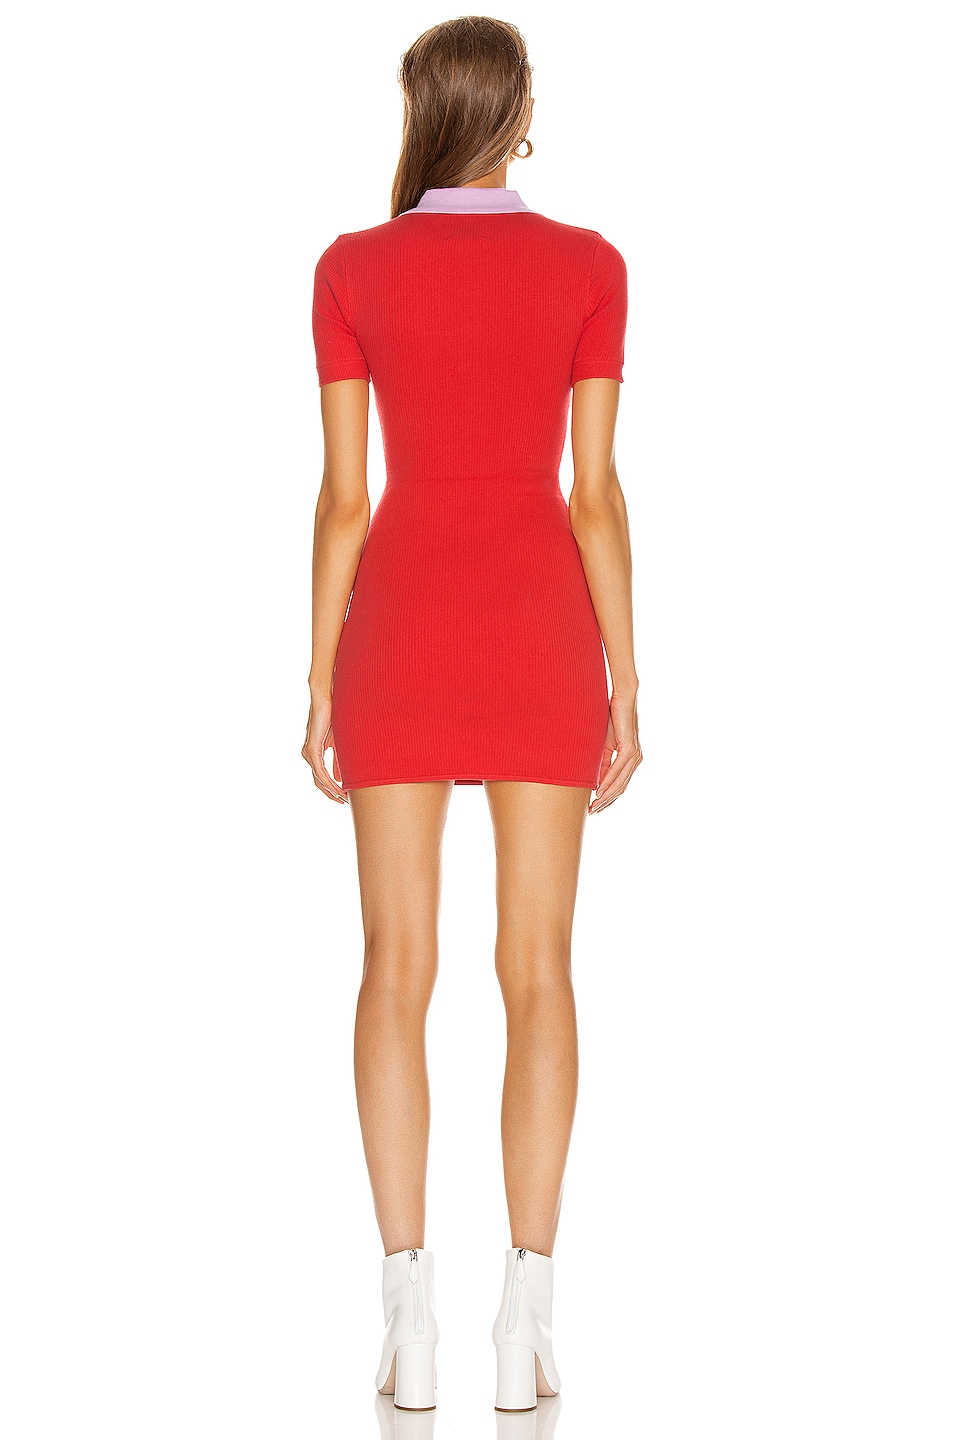 Image 3 of JoosTricot Polo Dress in Fire Poppy & Wild Rose